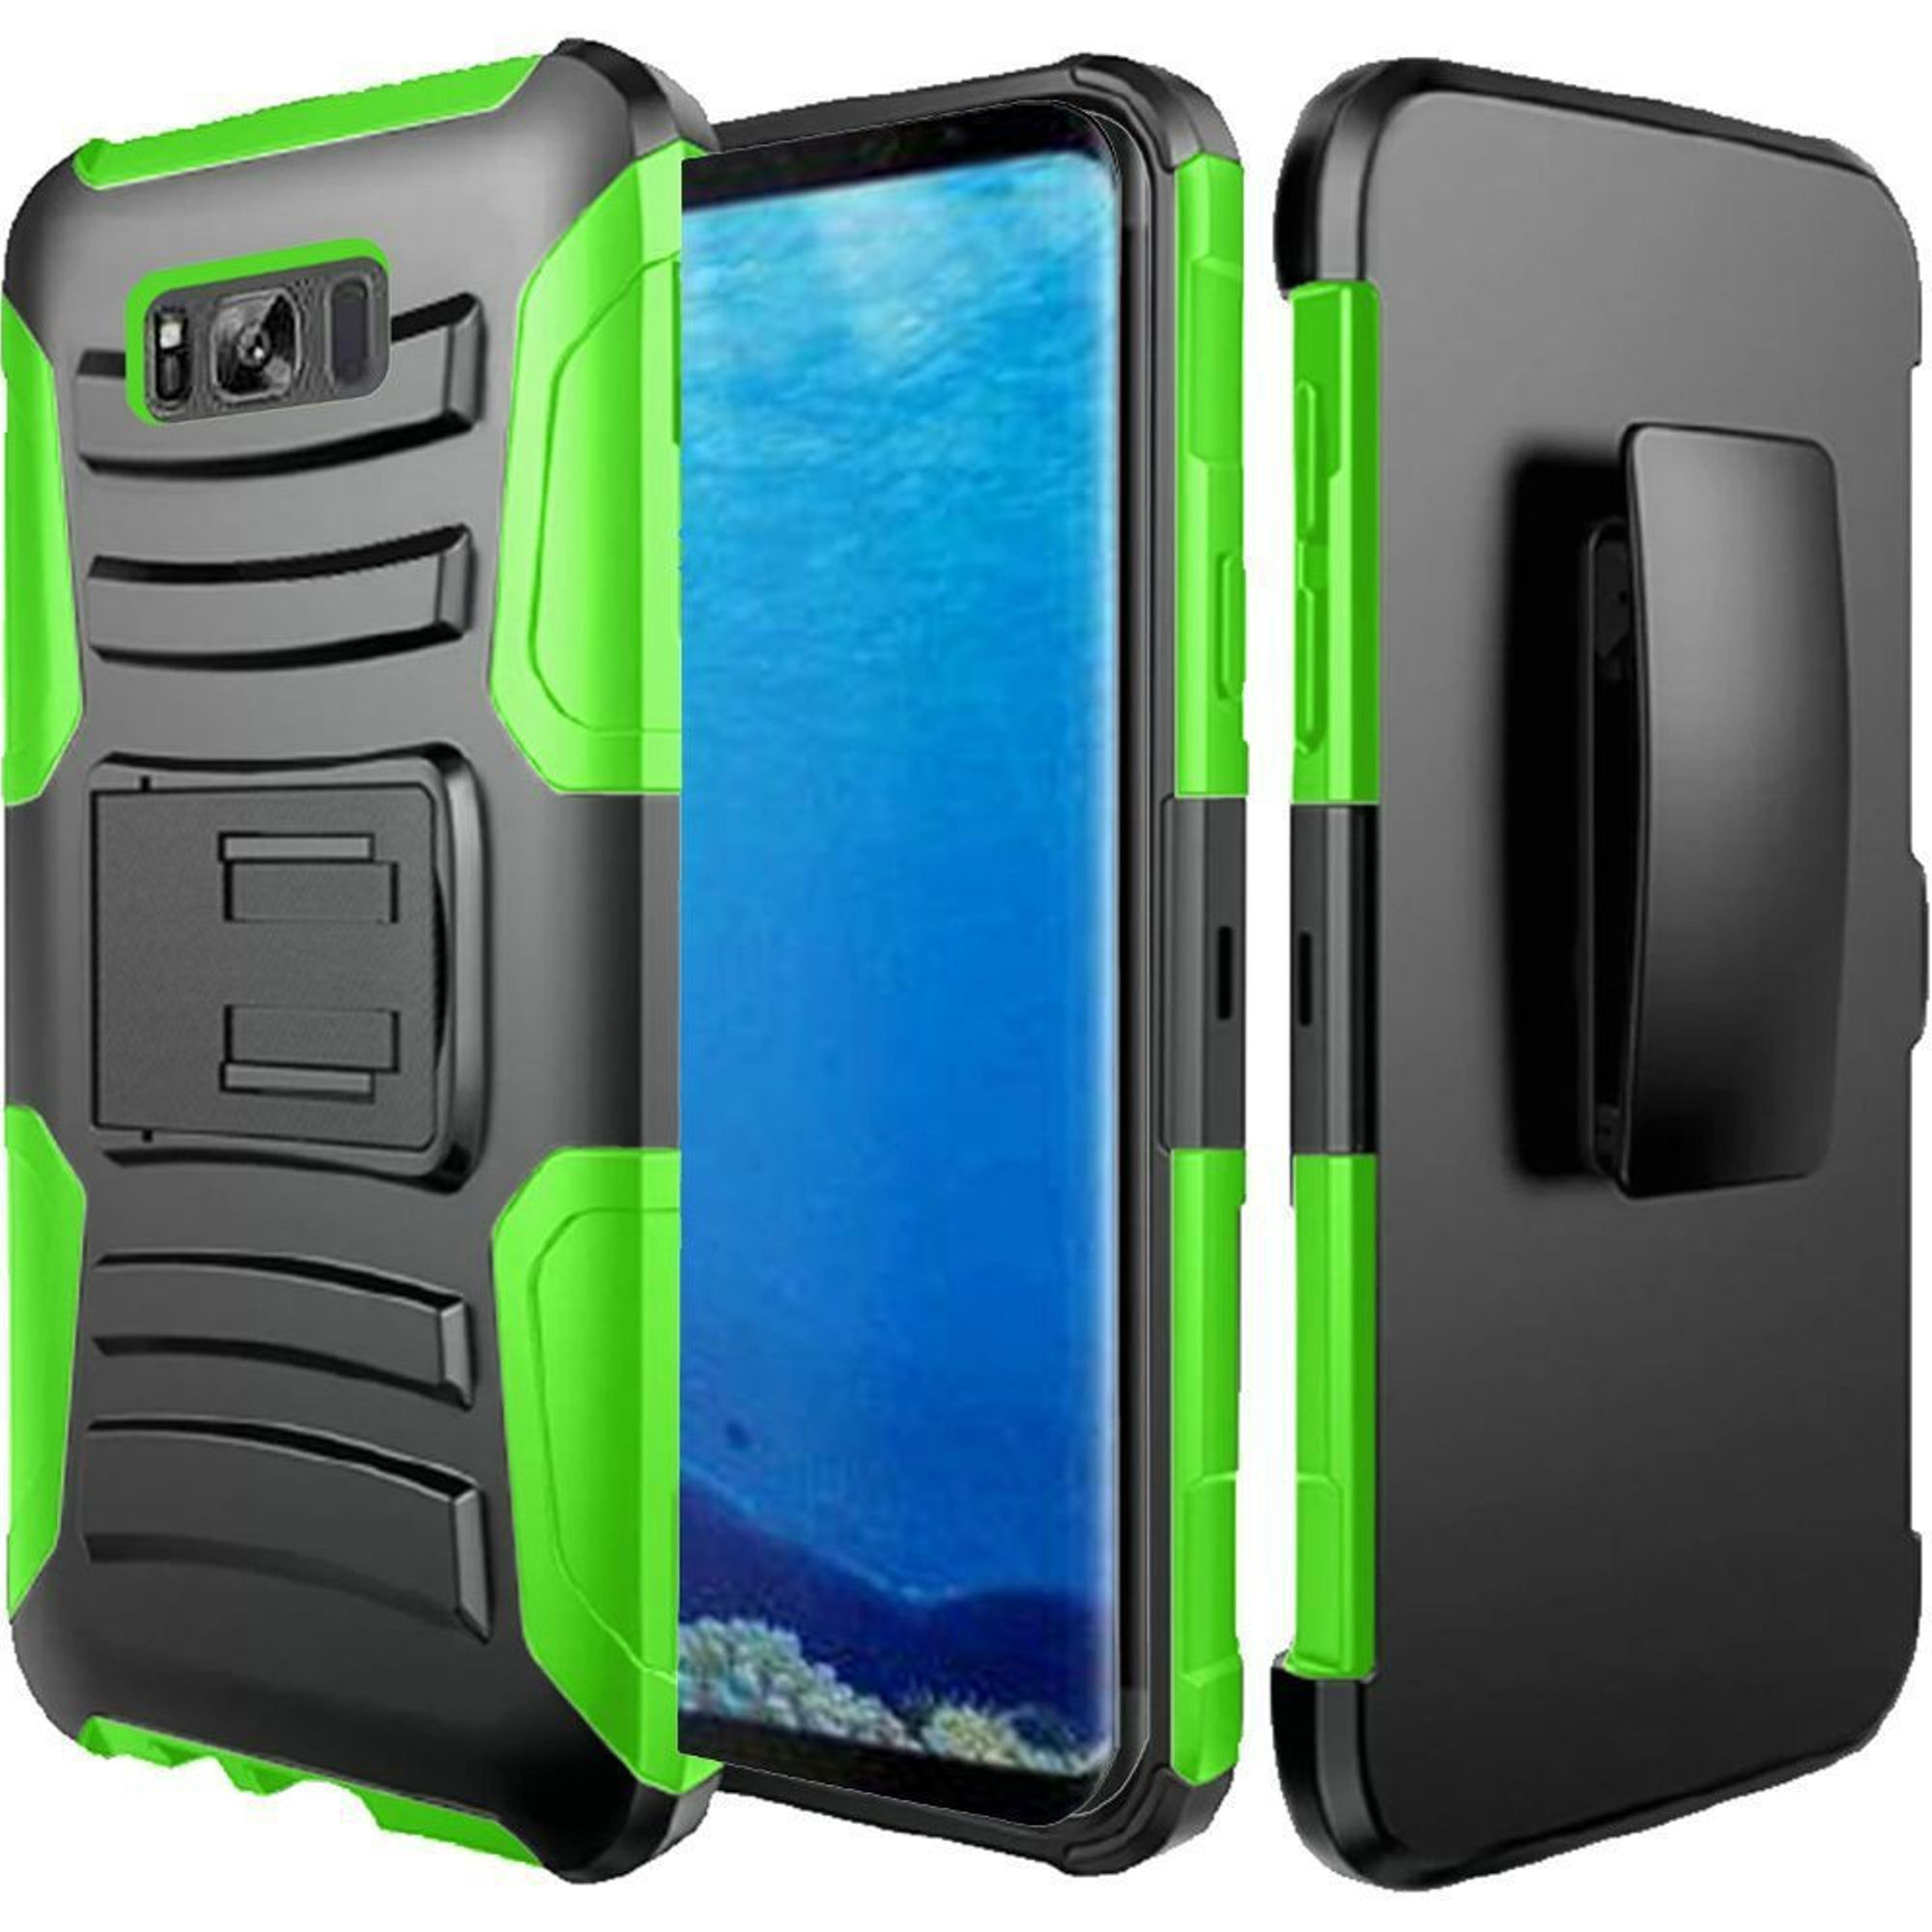 Samsung Galaxy S8 Case, by HR Wireless Dual Layer Hybrid Stand Rubberized Hard Plastic/Soft Silicone Case Cover Phone Holster For Samsung Galaxy S8, Black/Neon Green